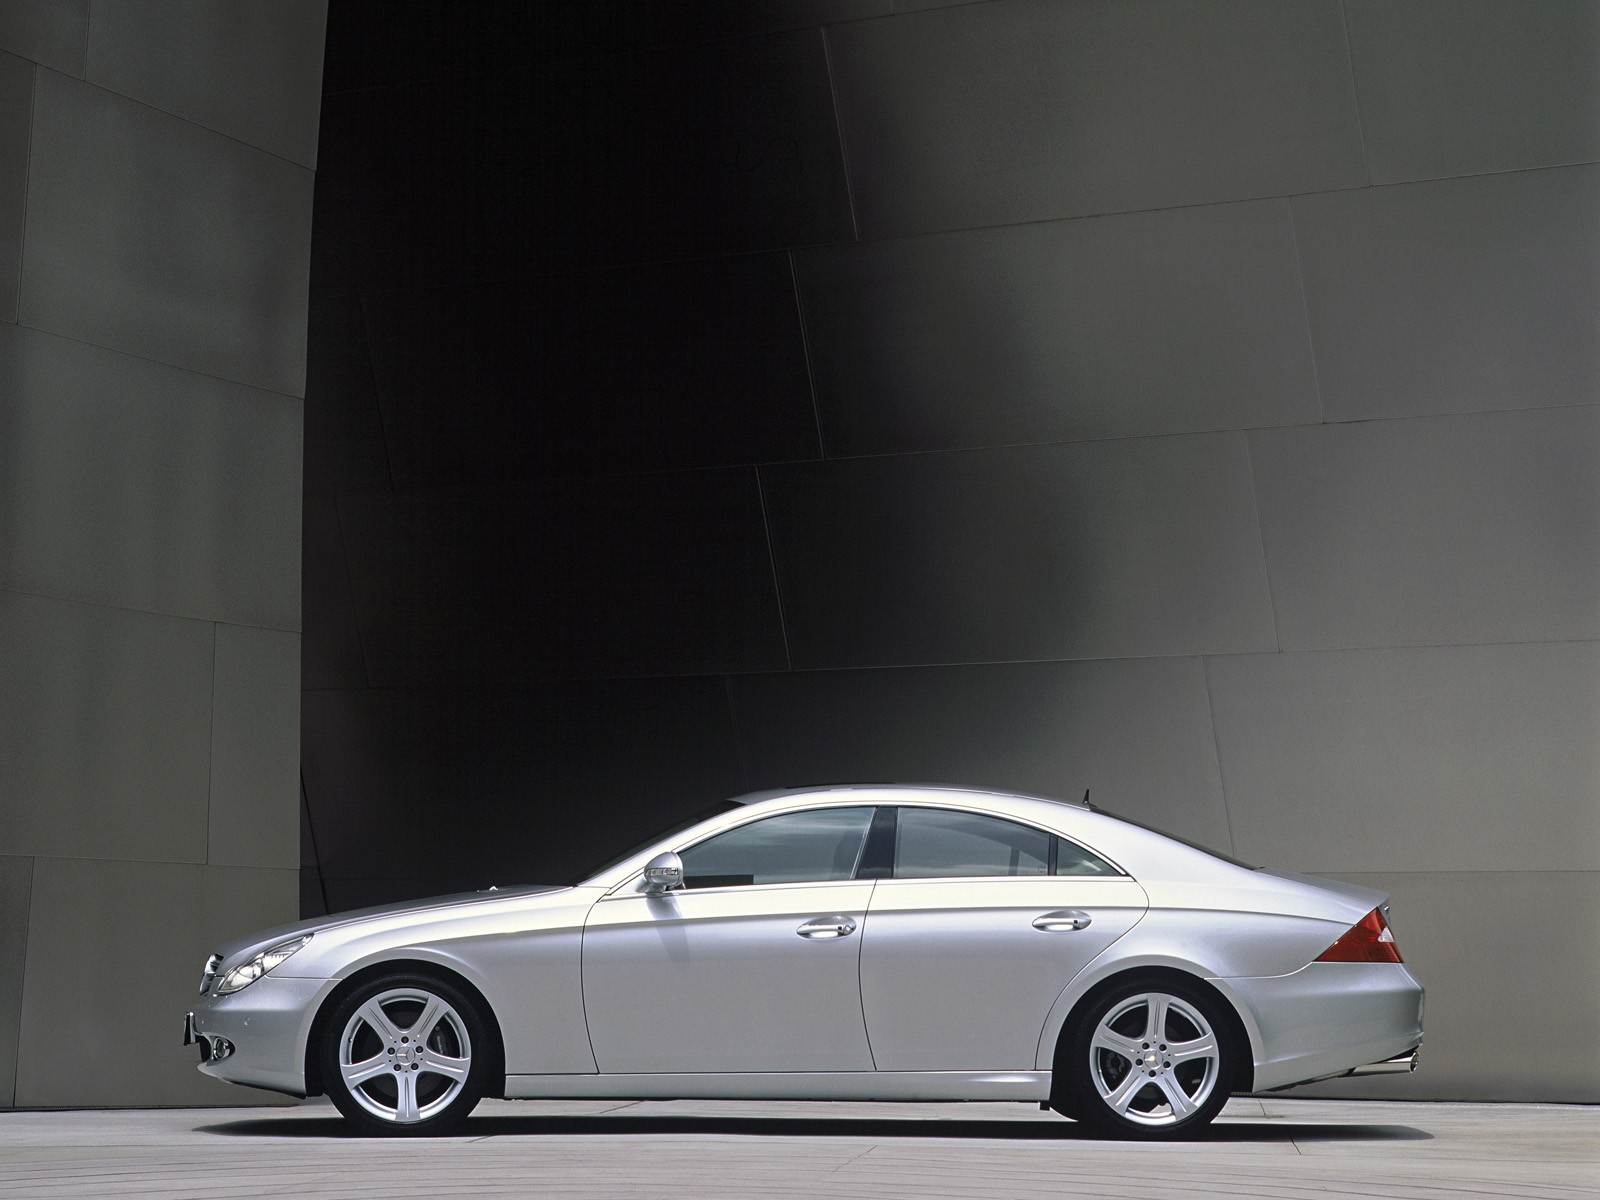 2005 Mercedes-Benz CLS Widescreen